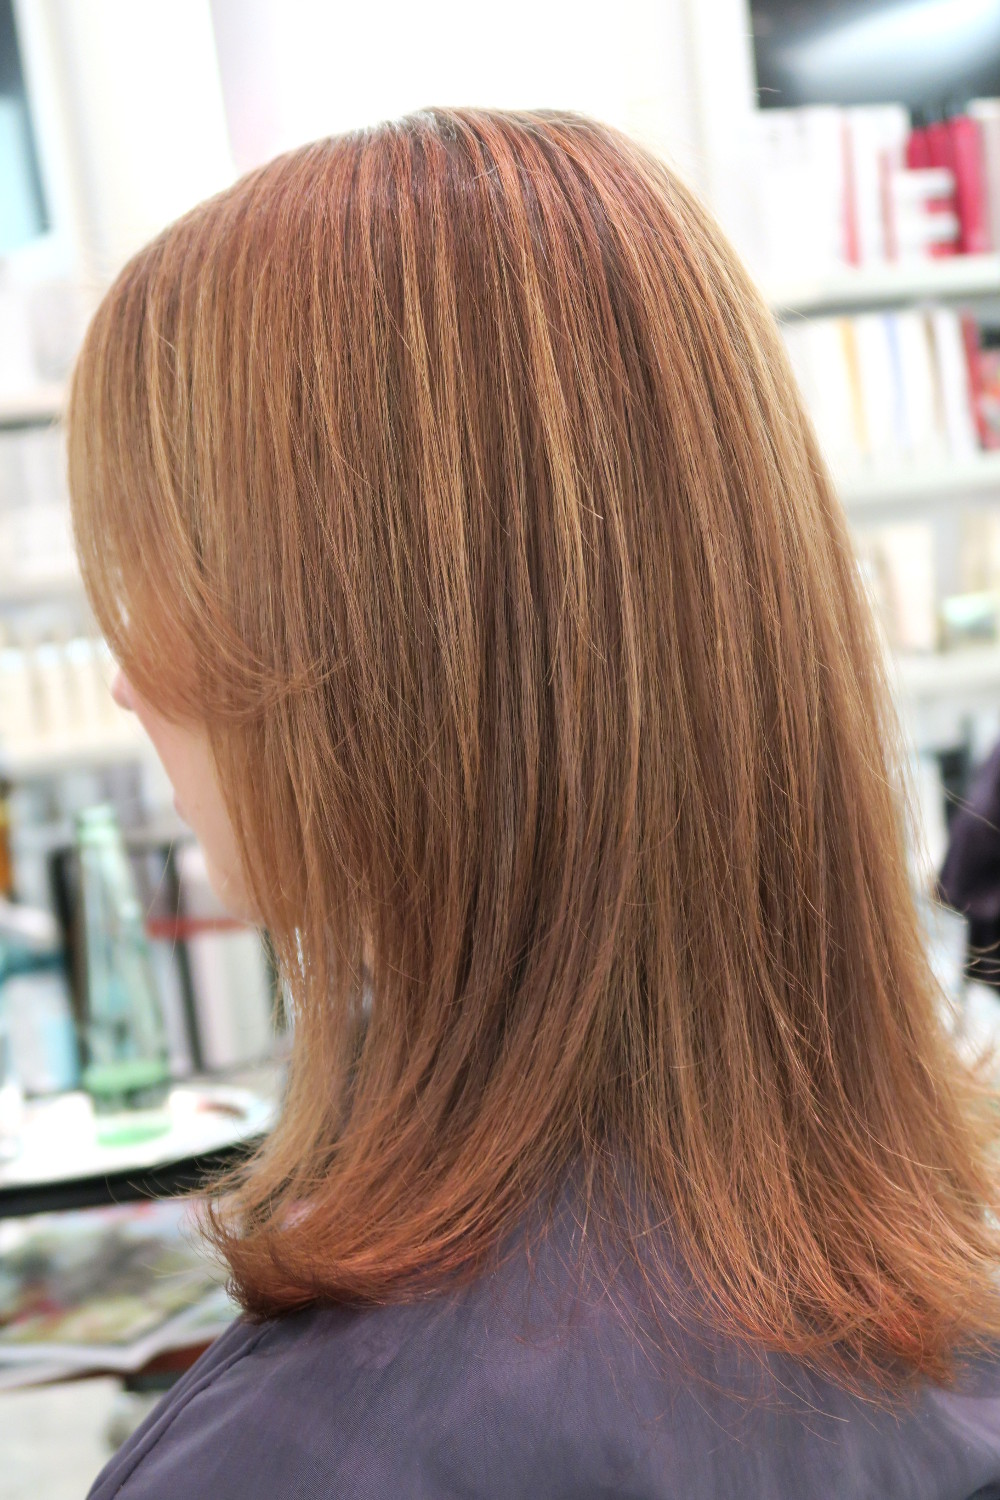 Haar Trend Balayage Vorher Nachher Fotos Creams Beauty Blog